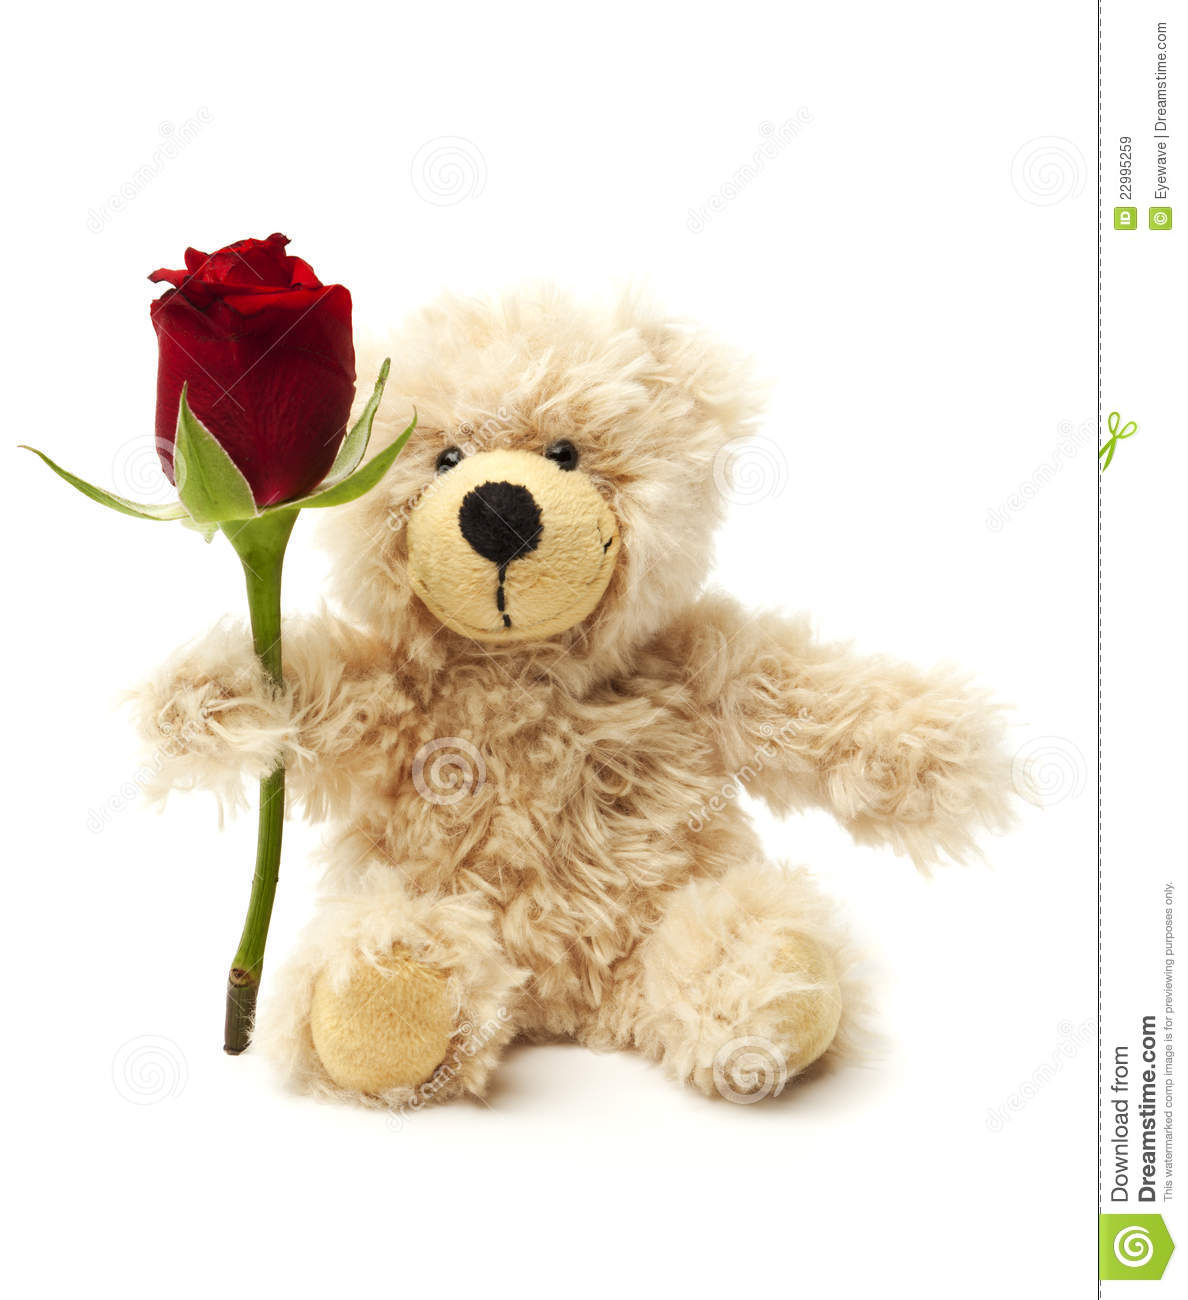 Teddy Bear Holding A Rose Royalty Free Stock Images - Image: 22995259